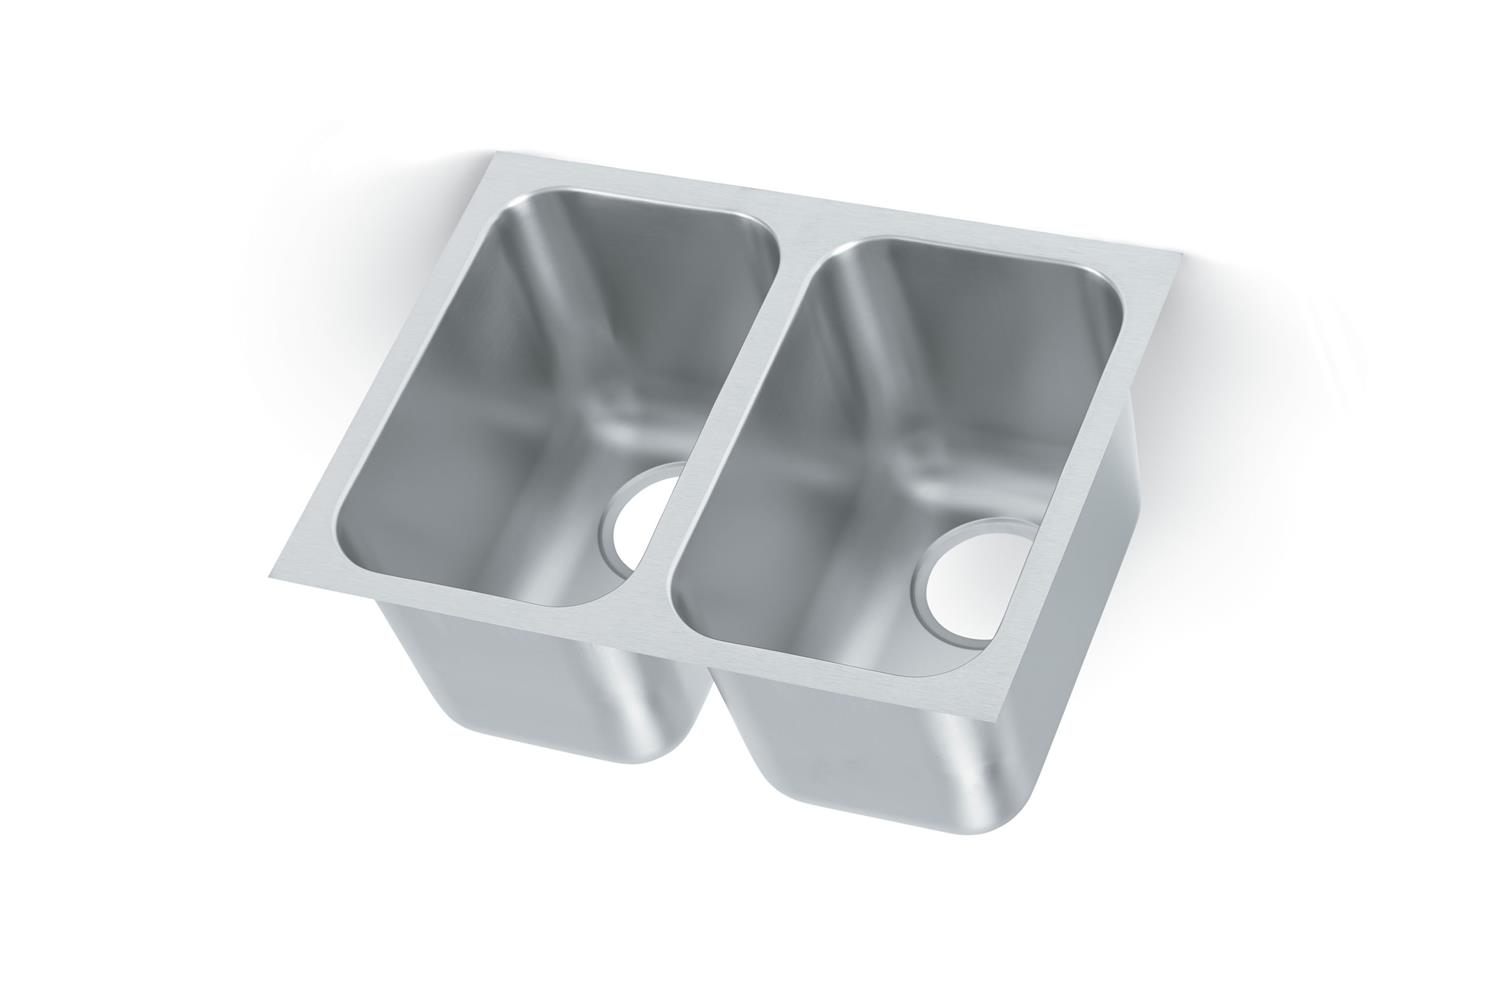 Vollrath 10102-1 Heavy Weight Double Bowl Sink